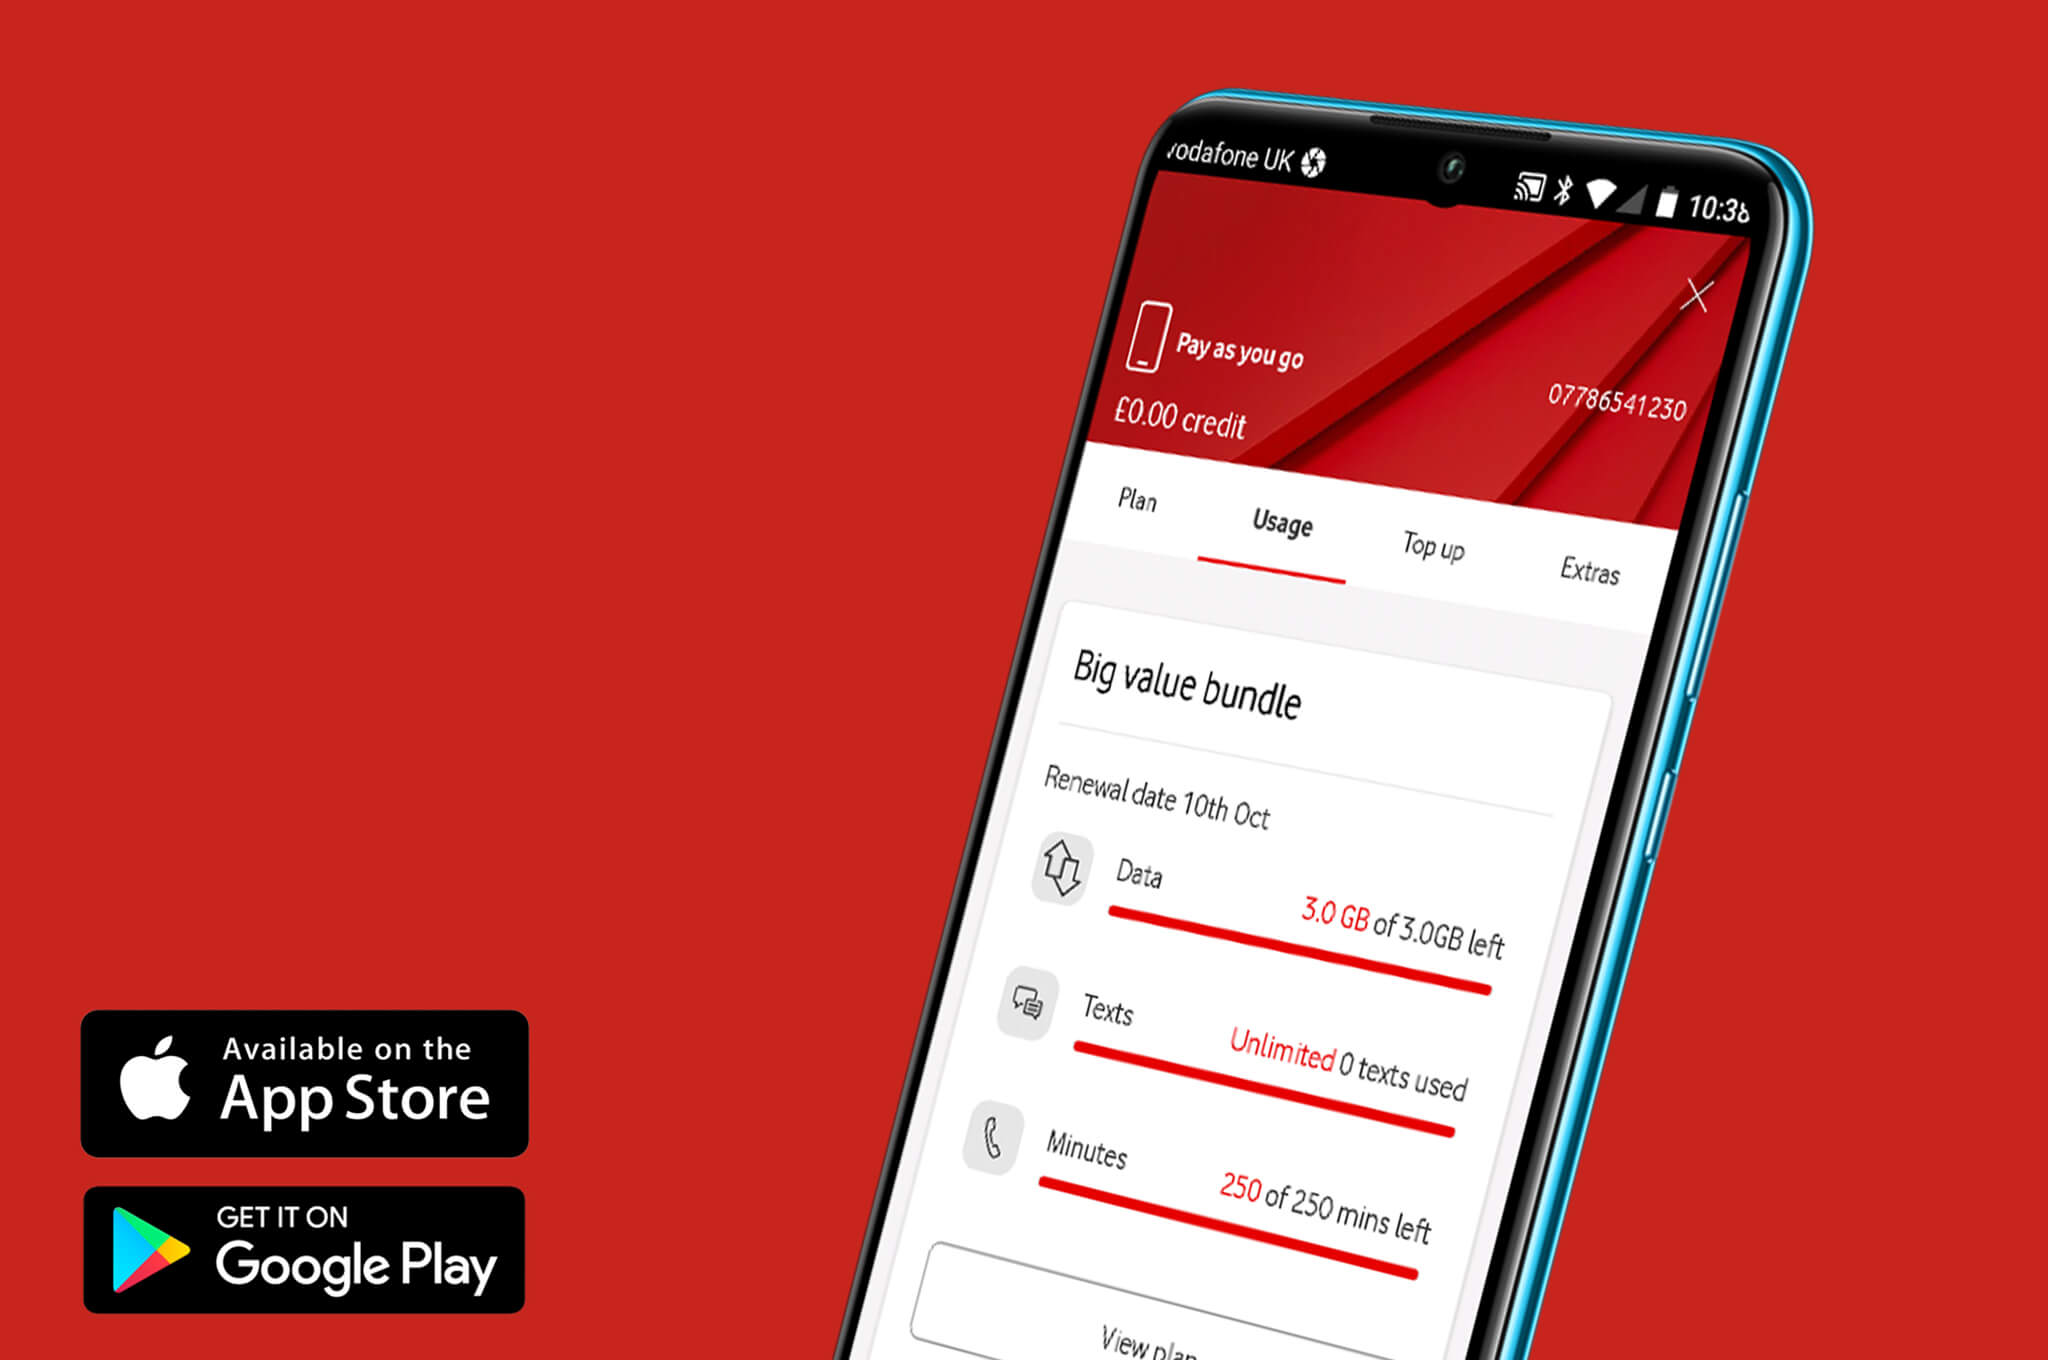 Top Up Pay As You Go Vodafone